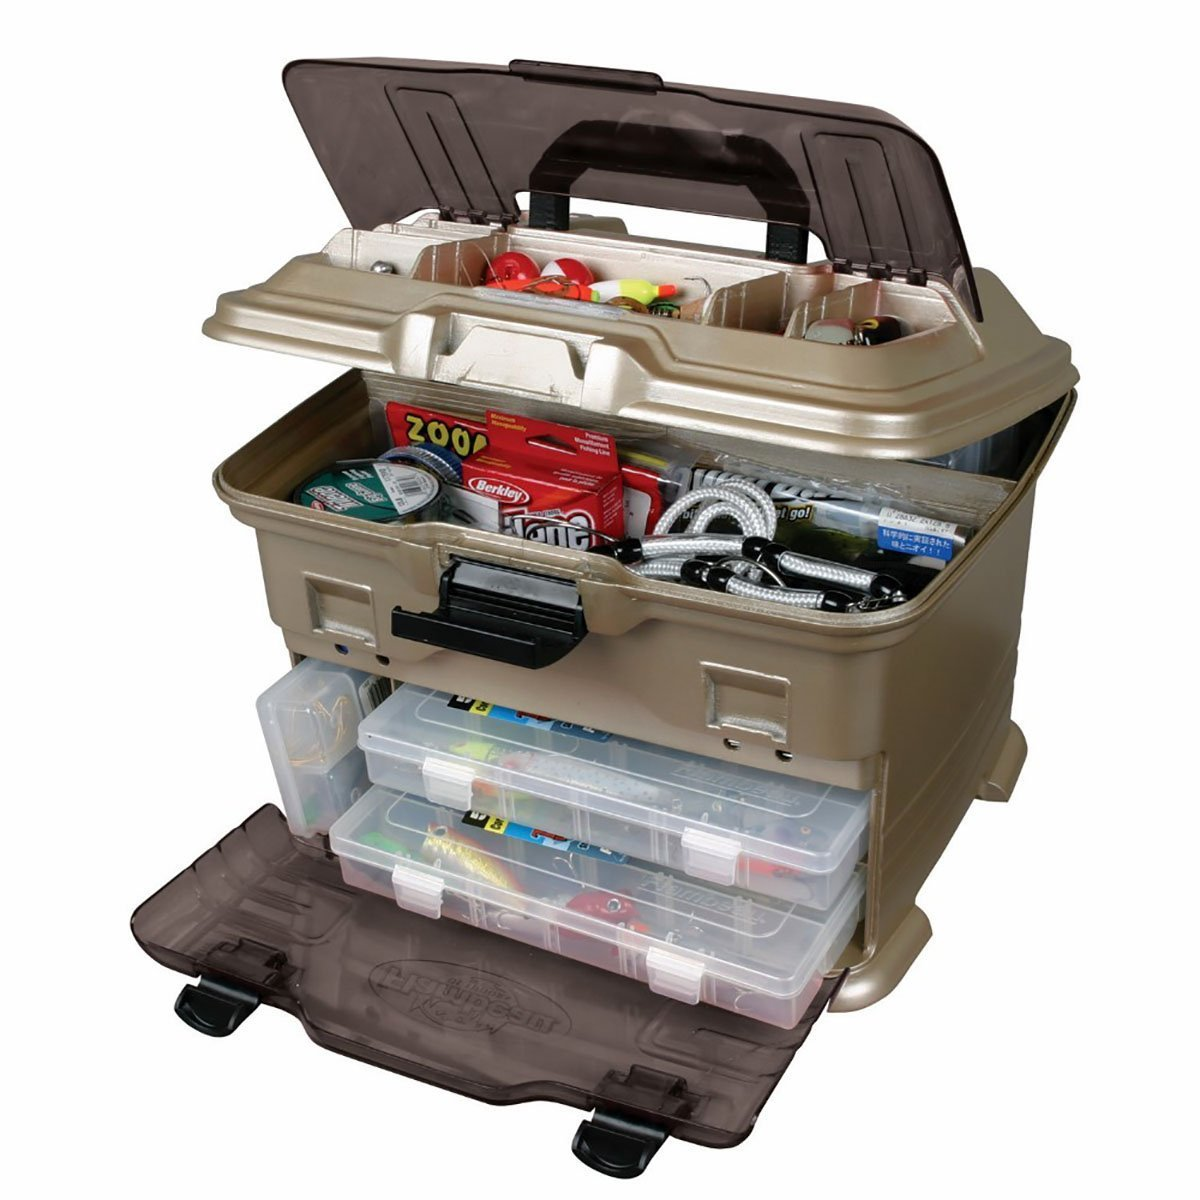 5 best fishing tackle boxes 2017 hard soft to large for Best fishing tackle box